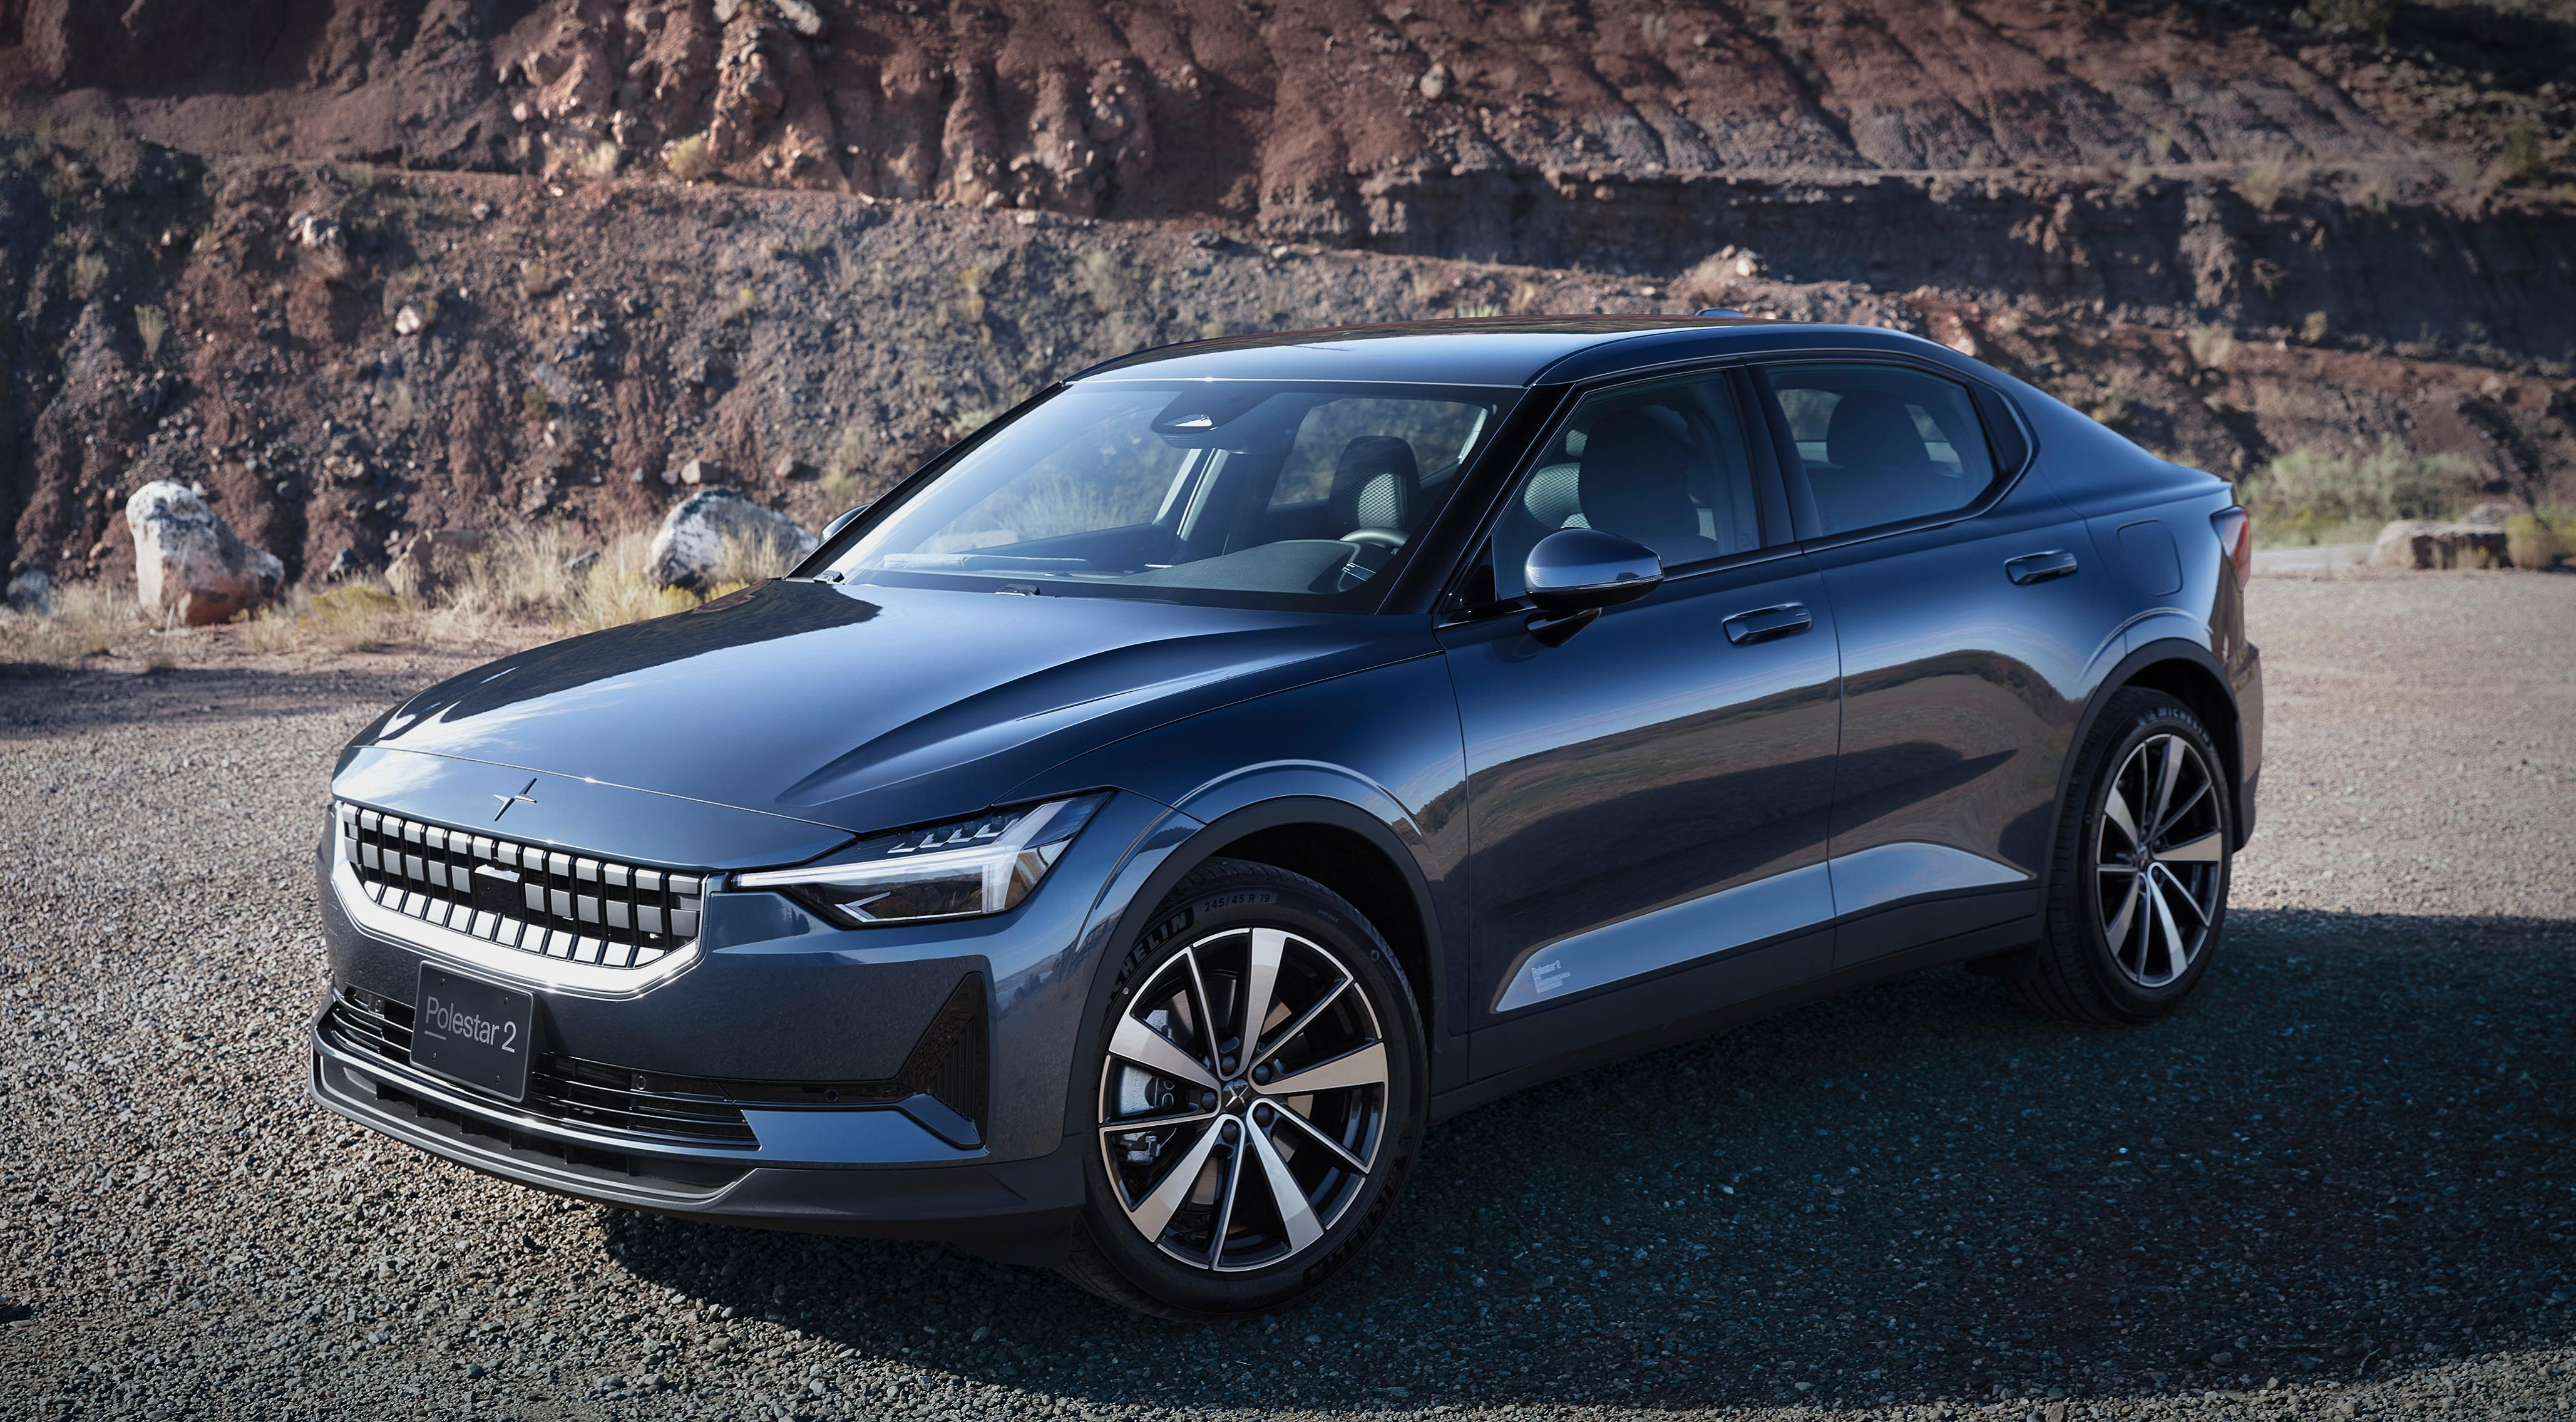 The Polestar 2 EV parked on a dirt and gravel road with a rocky cliff in the background.